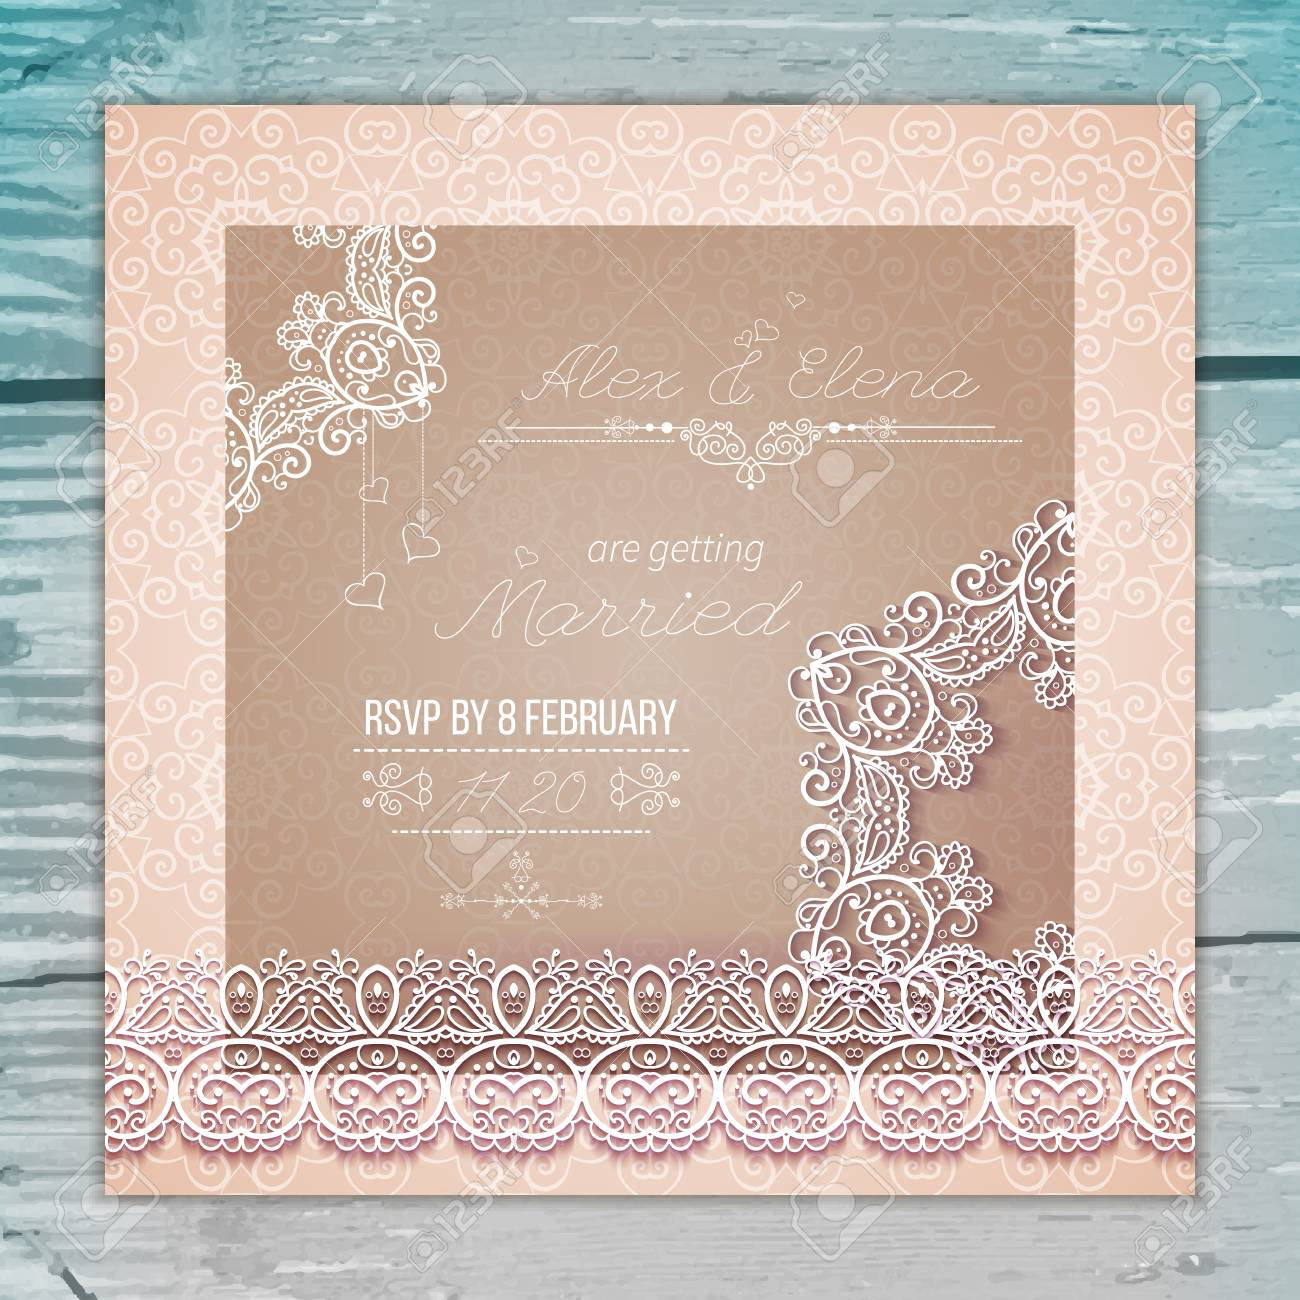 b6eaf1181c Vector - Vintage Wedding card or invitation with abstract lace seamless  background and borders on a realistic wood texture.